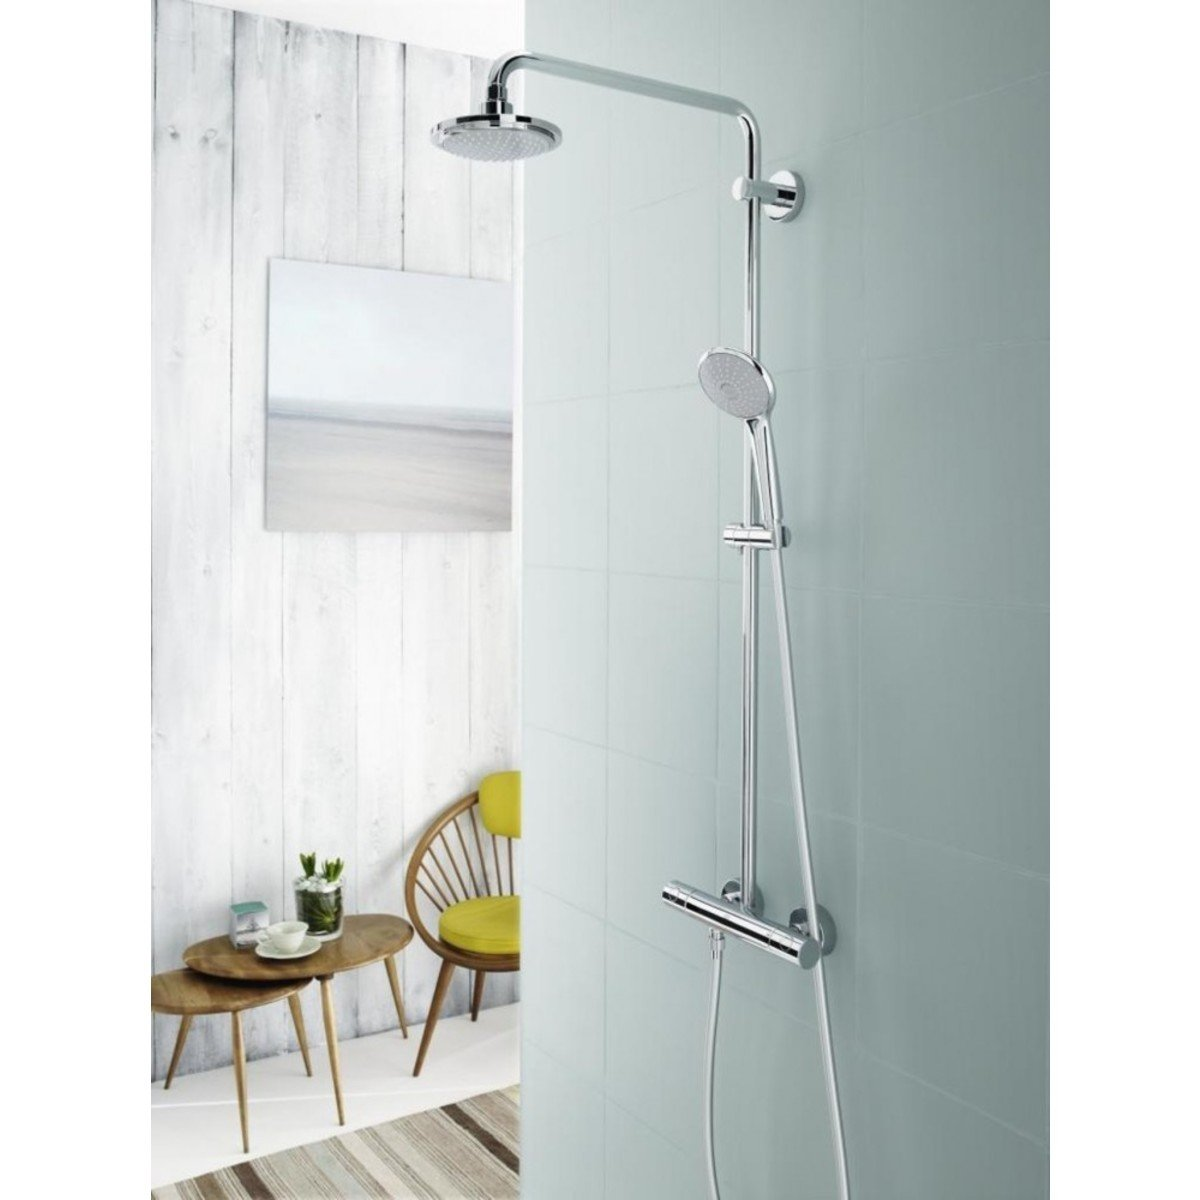 grohe euphoria colonne de douche avec robinet thermostatique tablette et rainshower cosmo 210. Black Bedroom Furniture Sets. Home Design Ideas